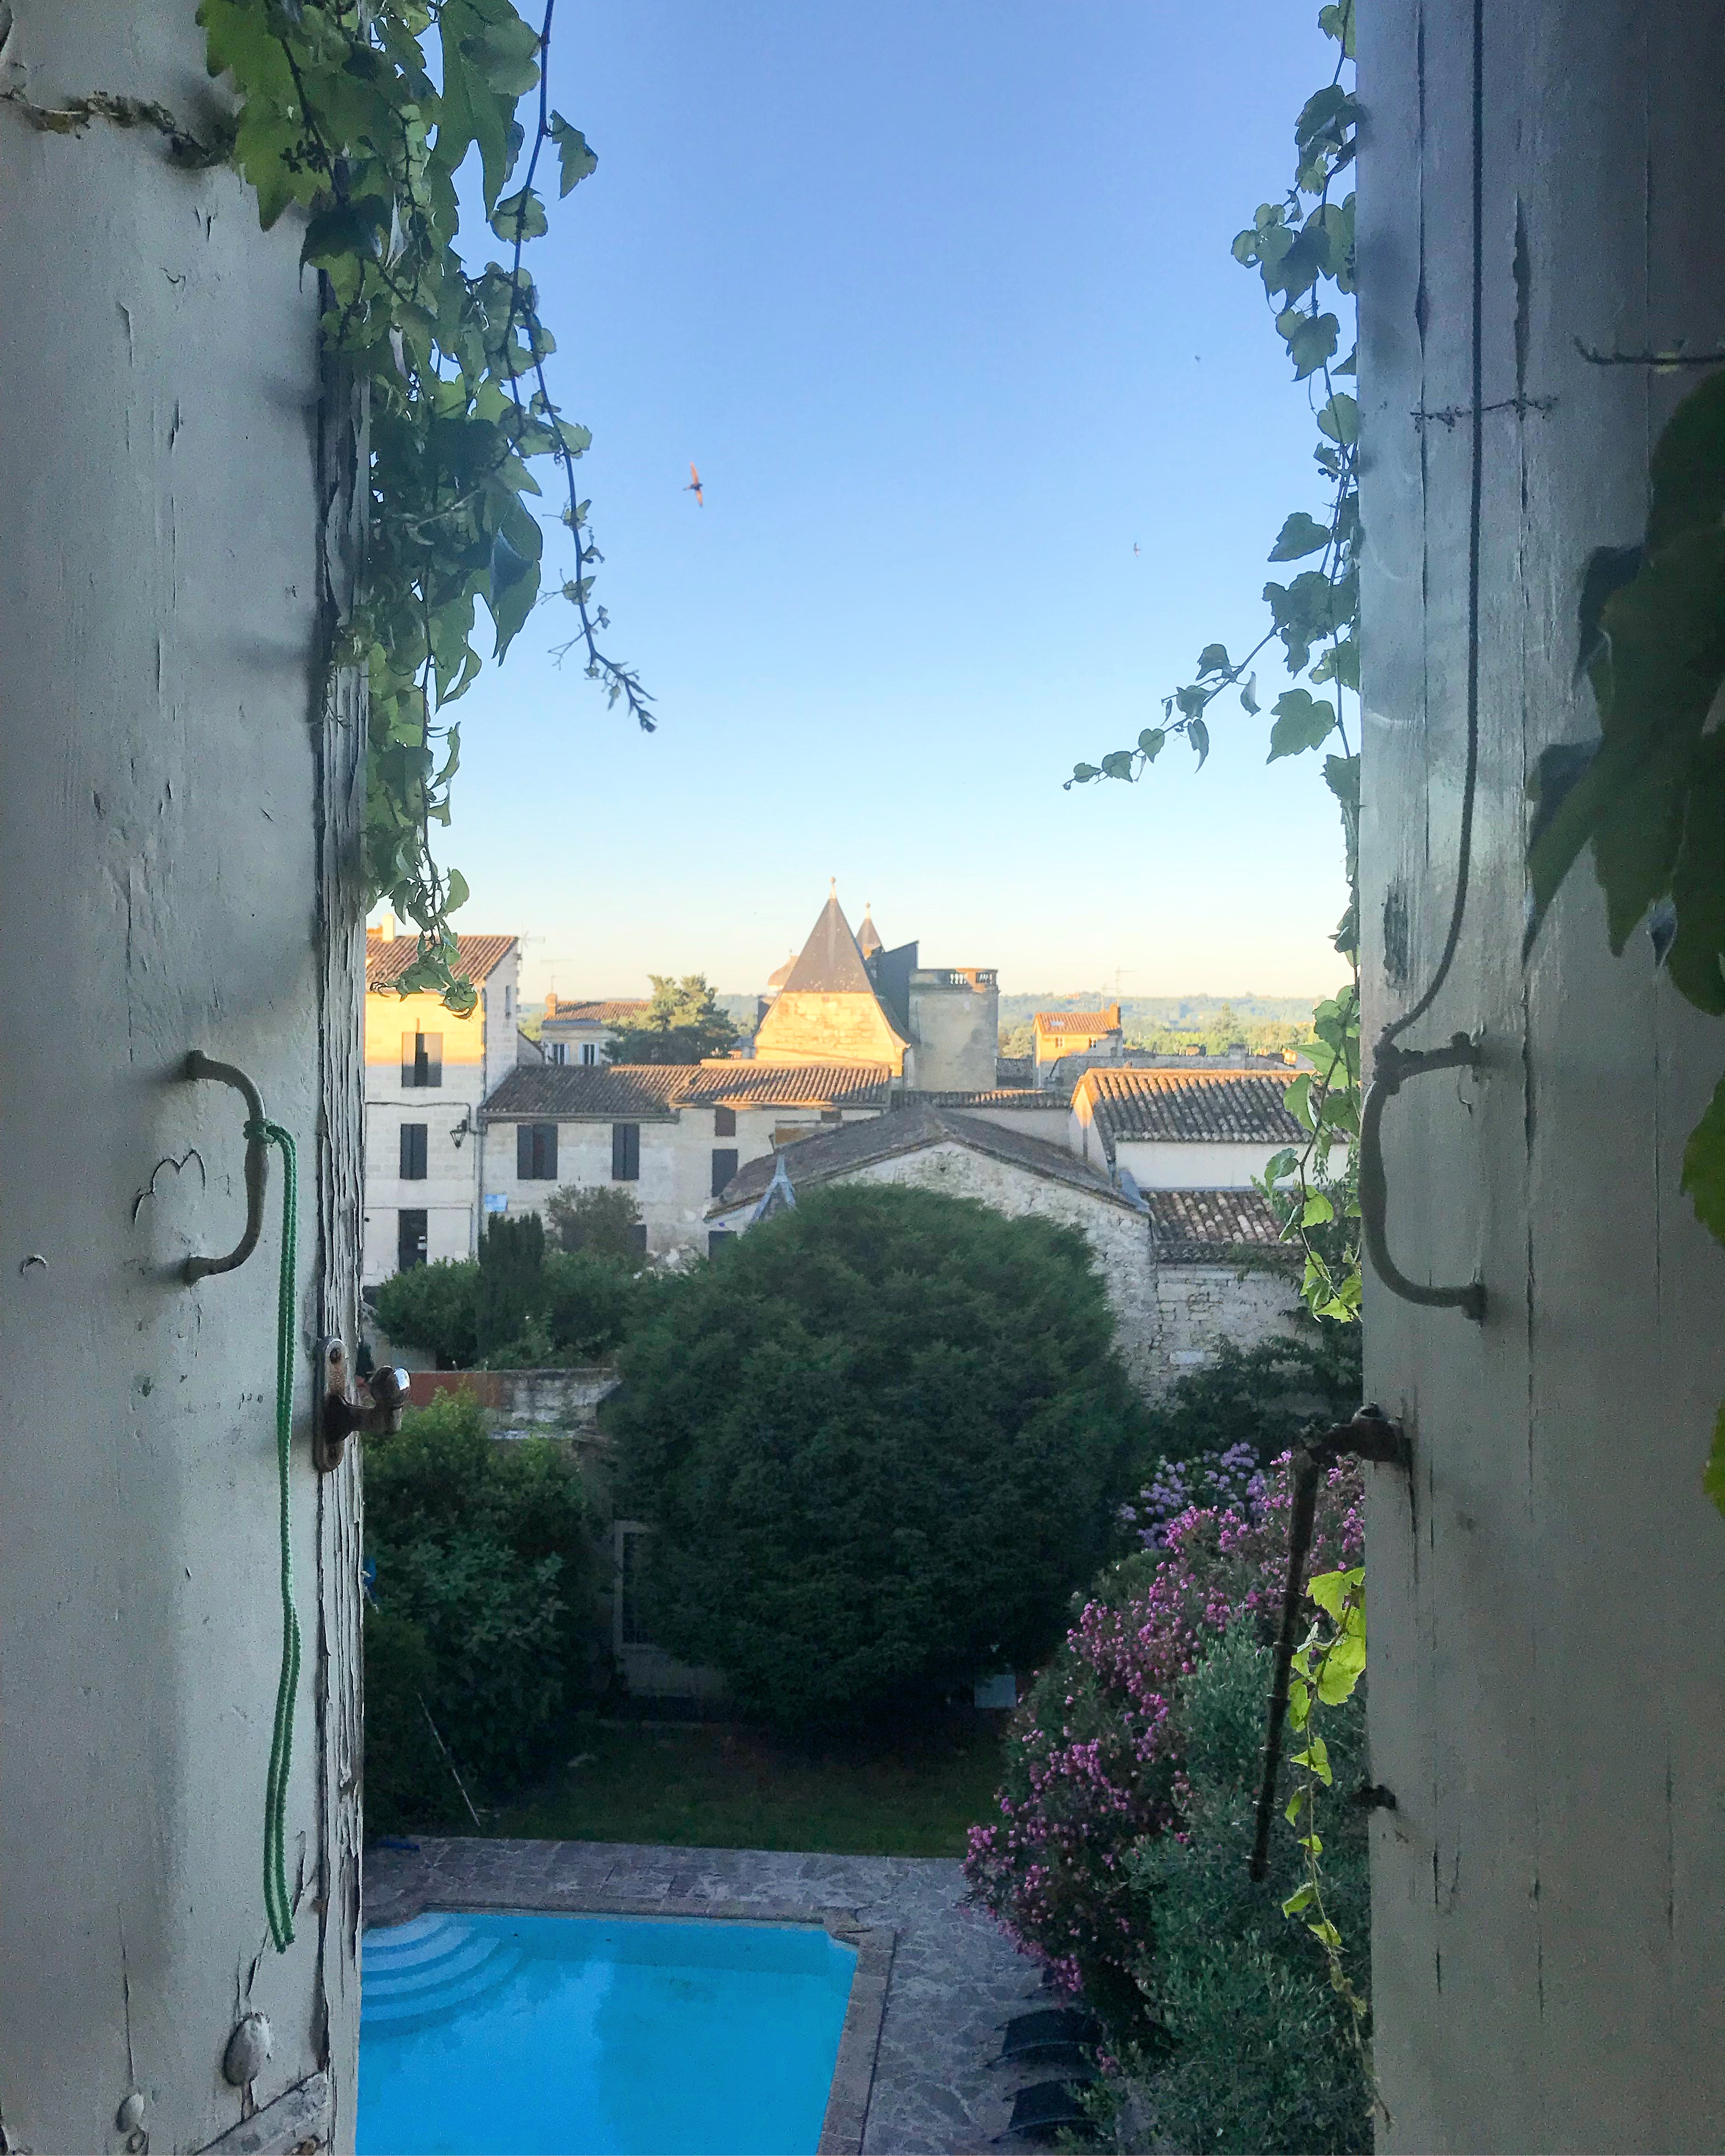 View from my room at Chez Castillon